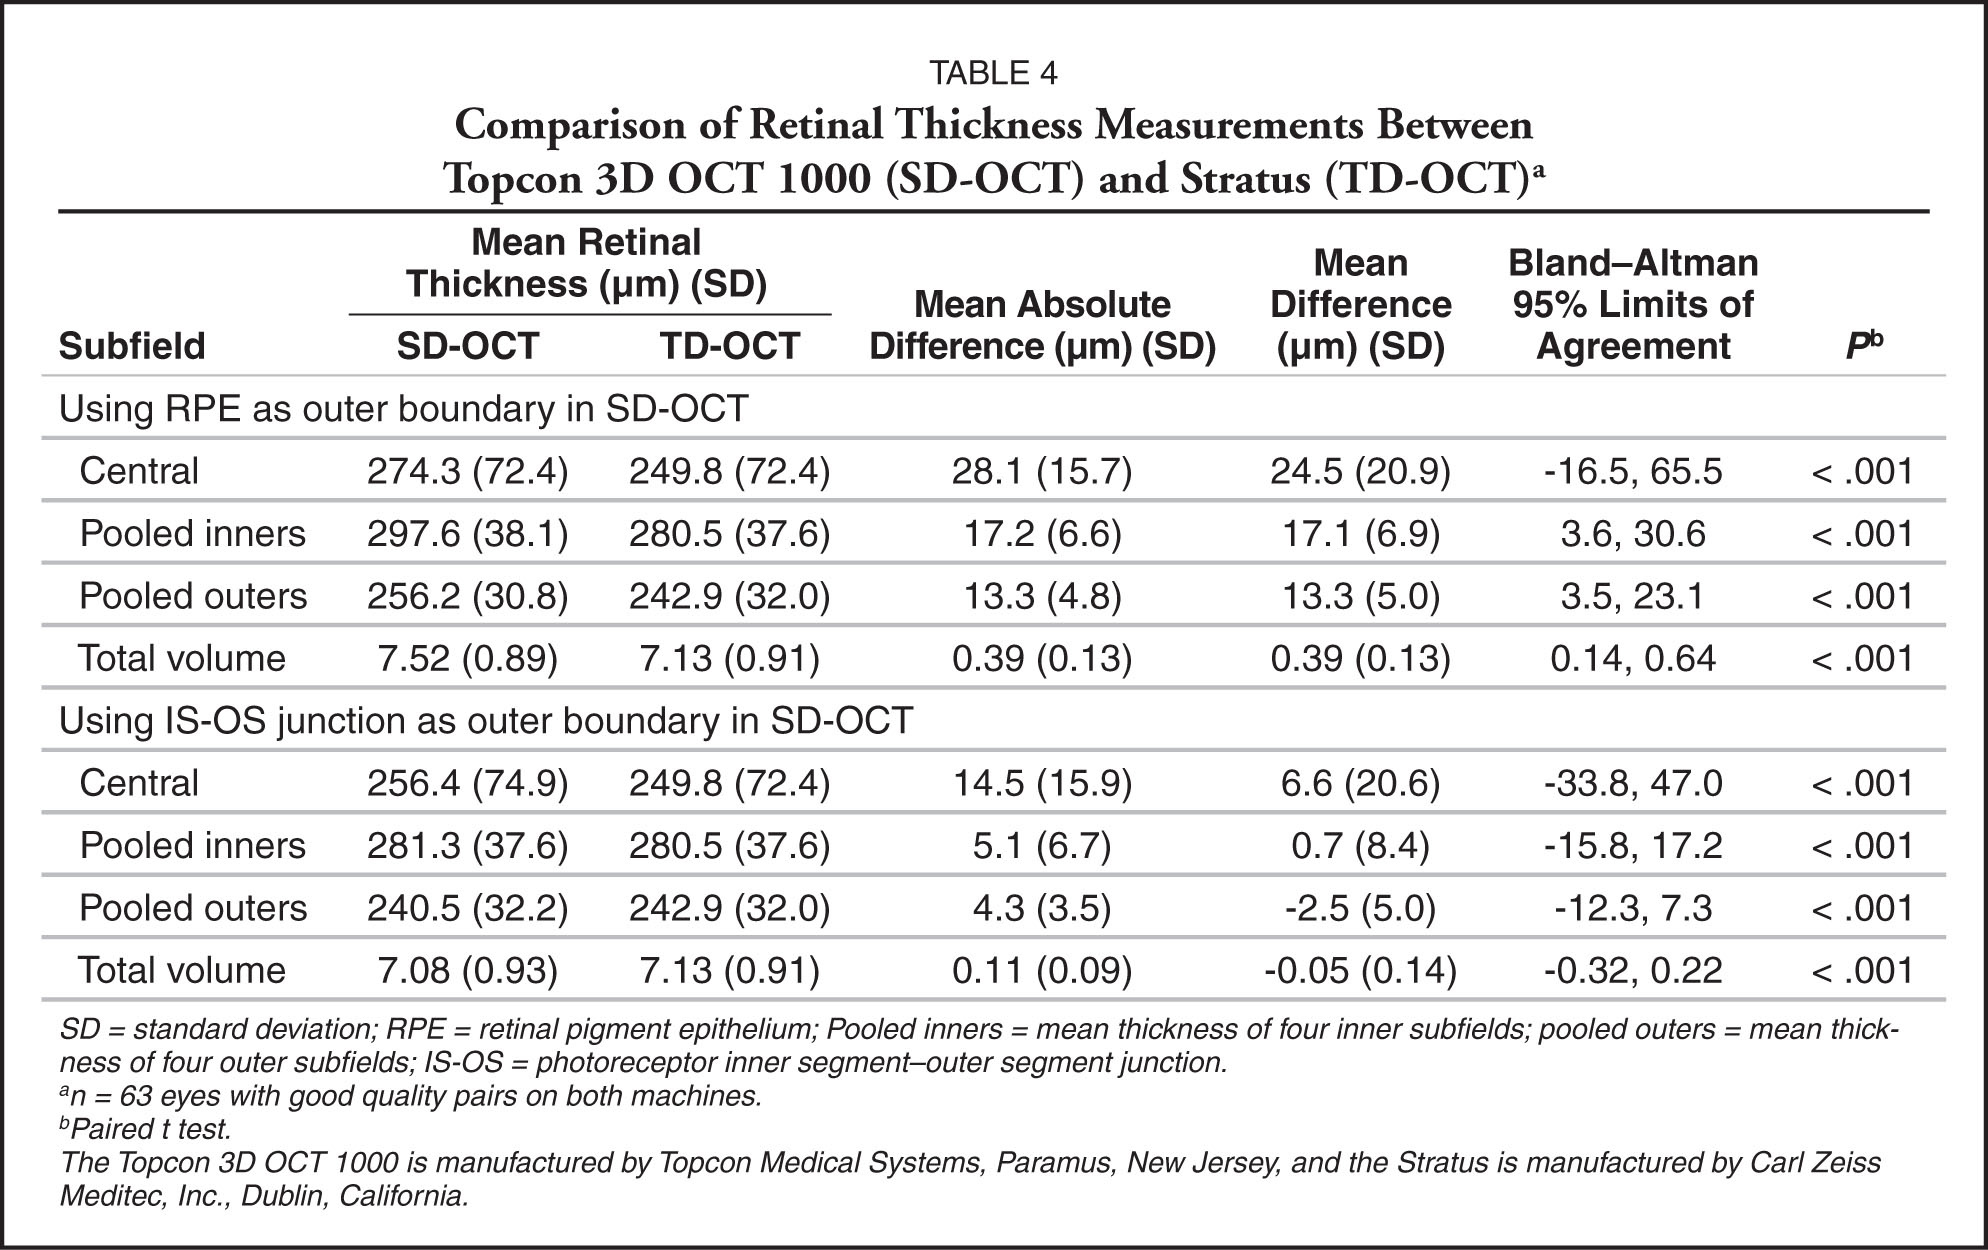 Comparison of Retinal Thickness Measurements Between Topcon 3D OCT 1000 (SD-OCT) and Stratus (TD-OCT)a